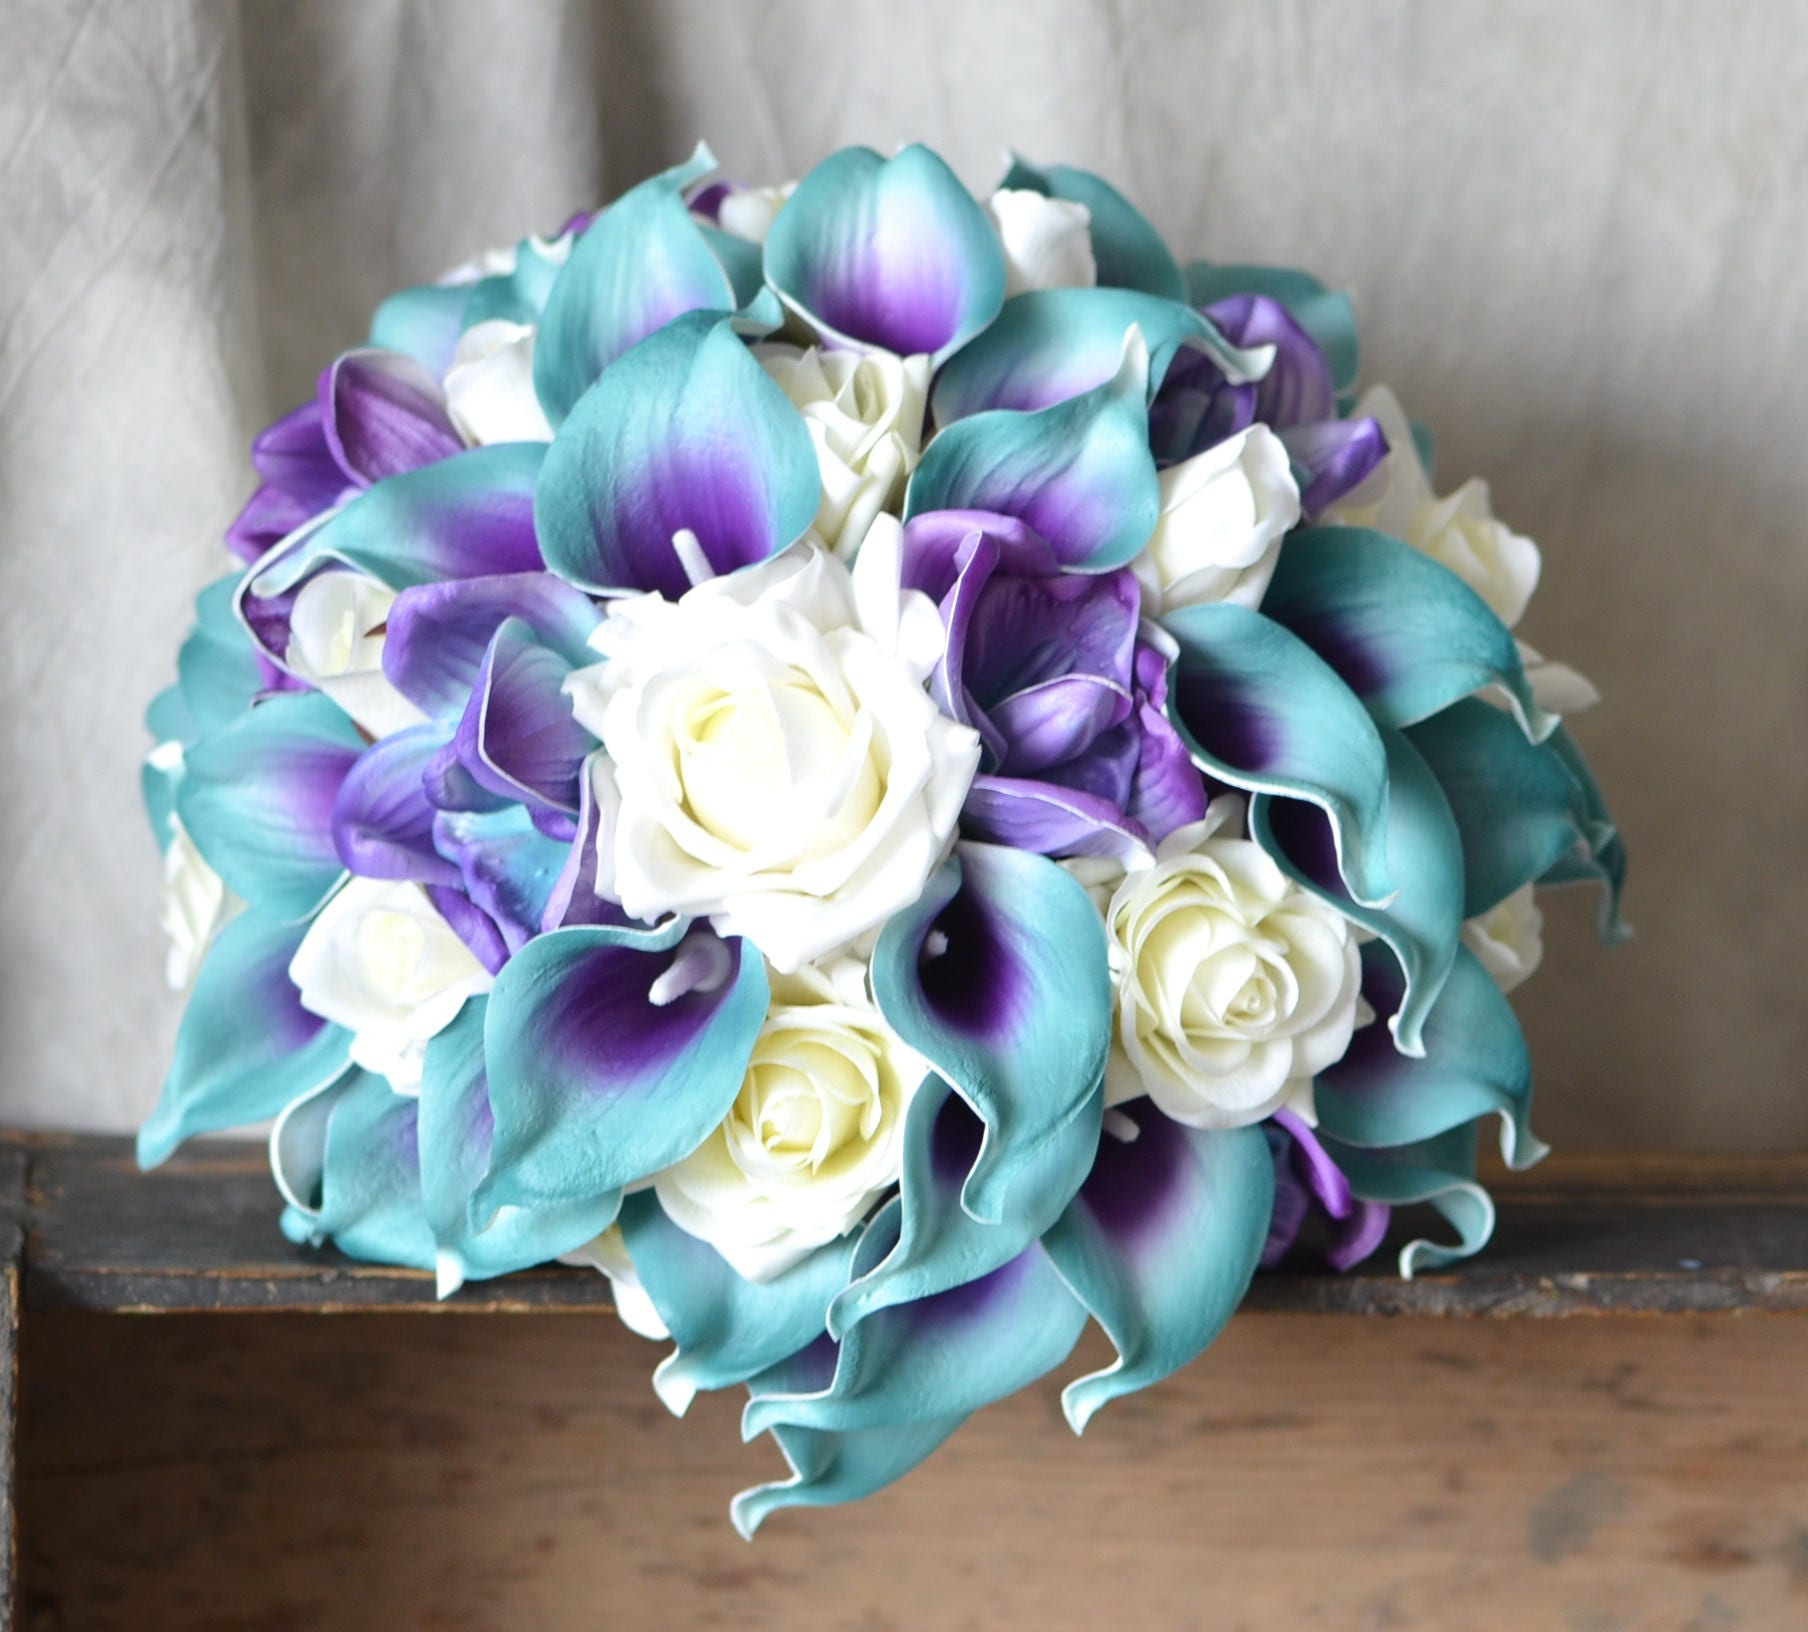 Teal And Purple Wedding Flowers: Teal Purple Bridal Bouquet Real Touch Flowers Calla Lily Ivory